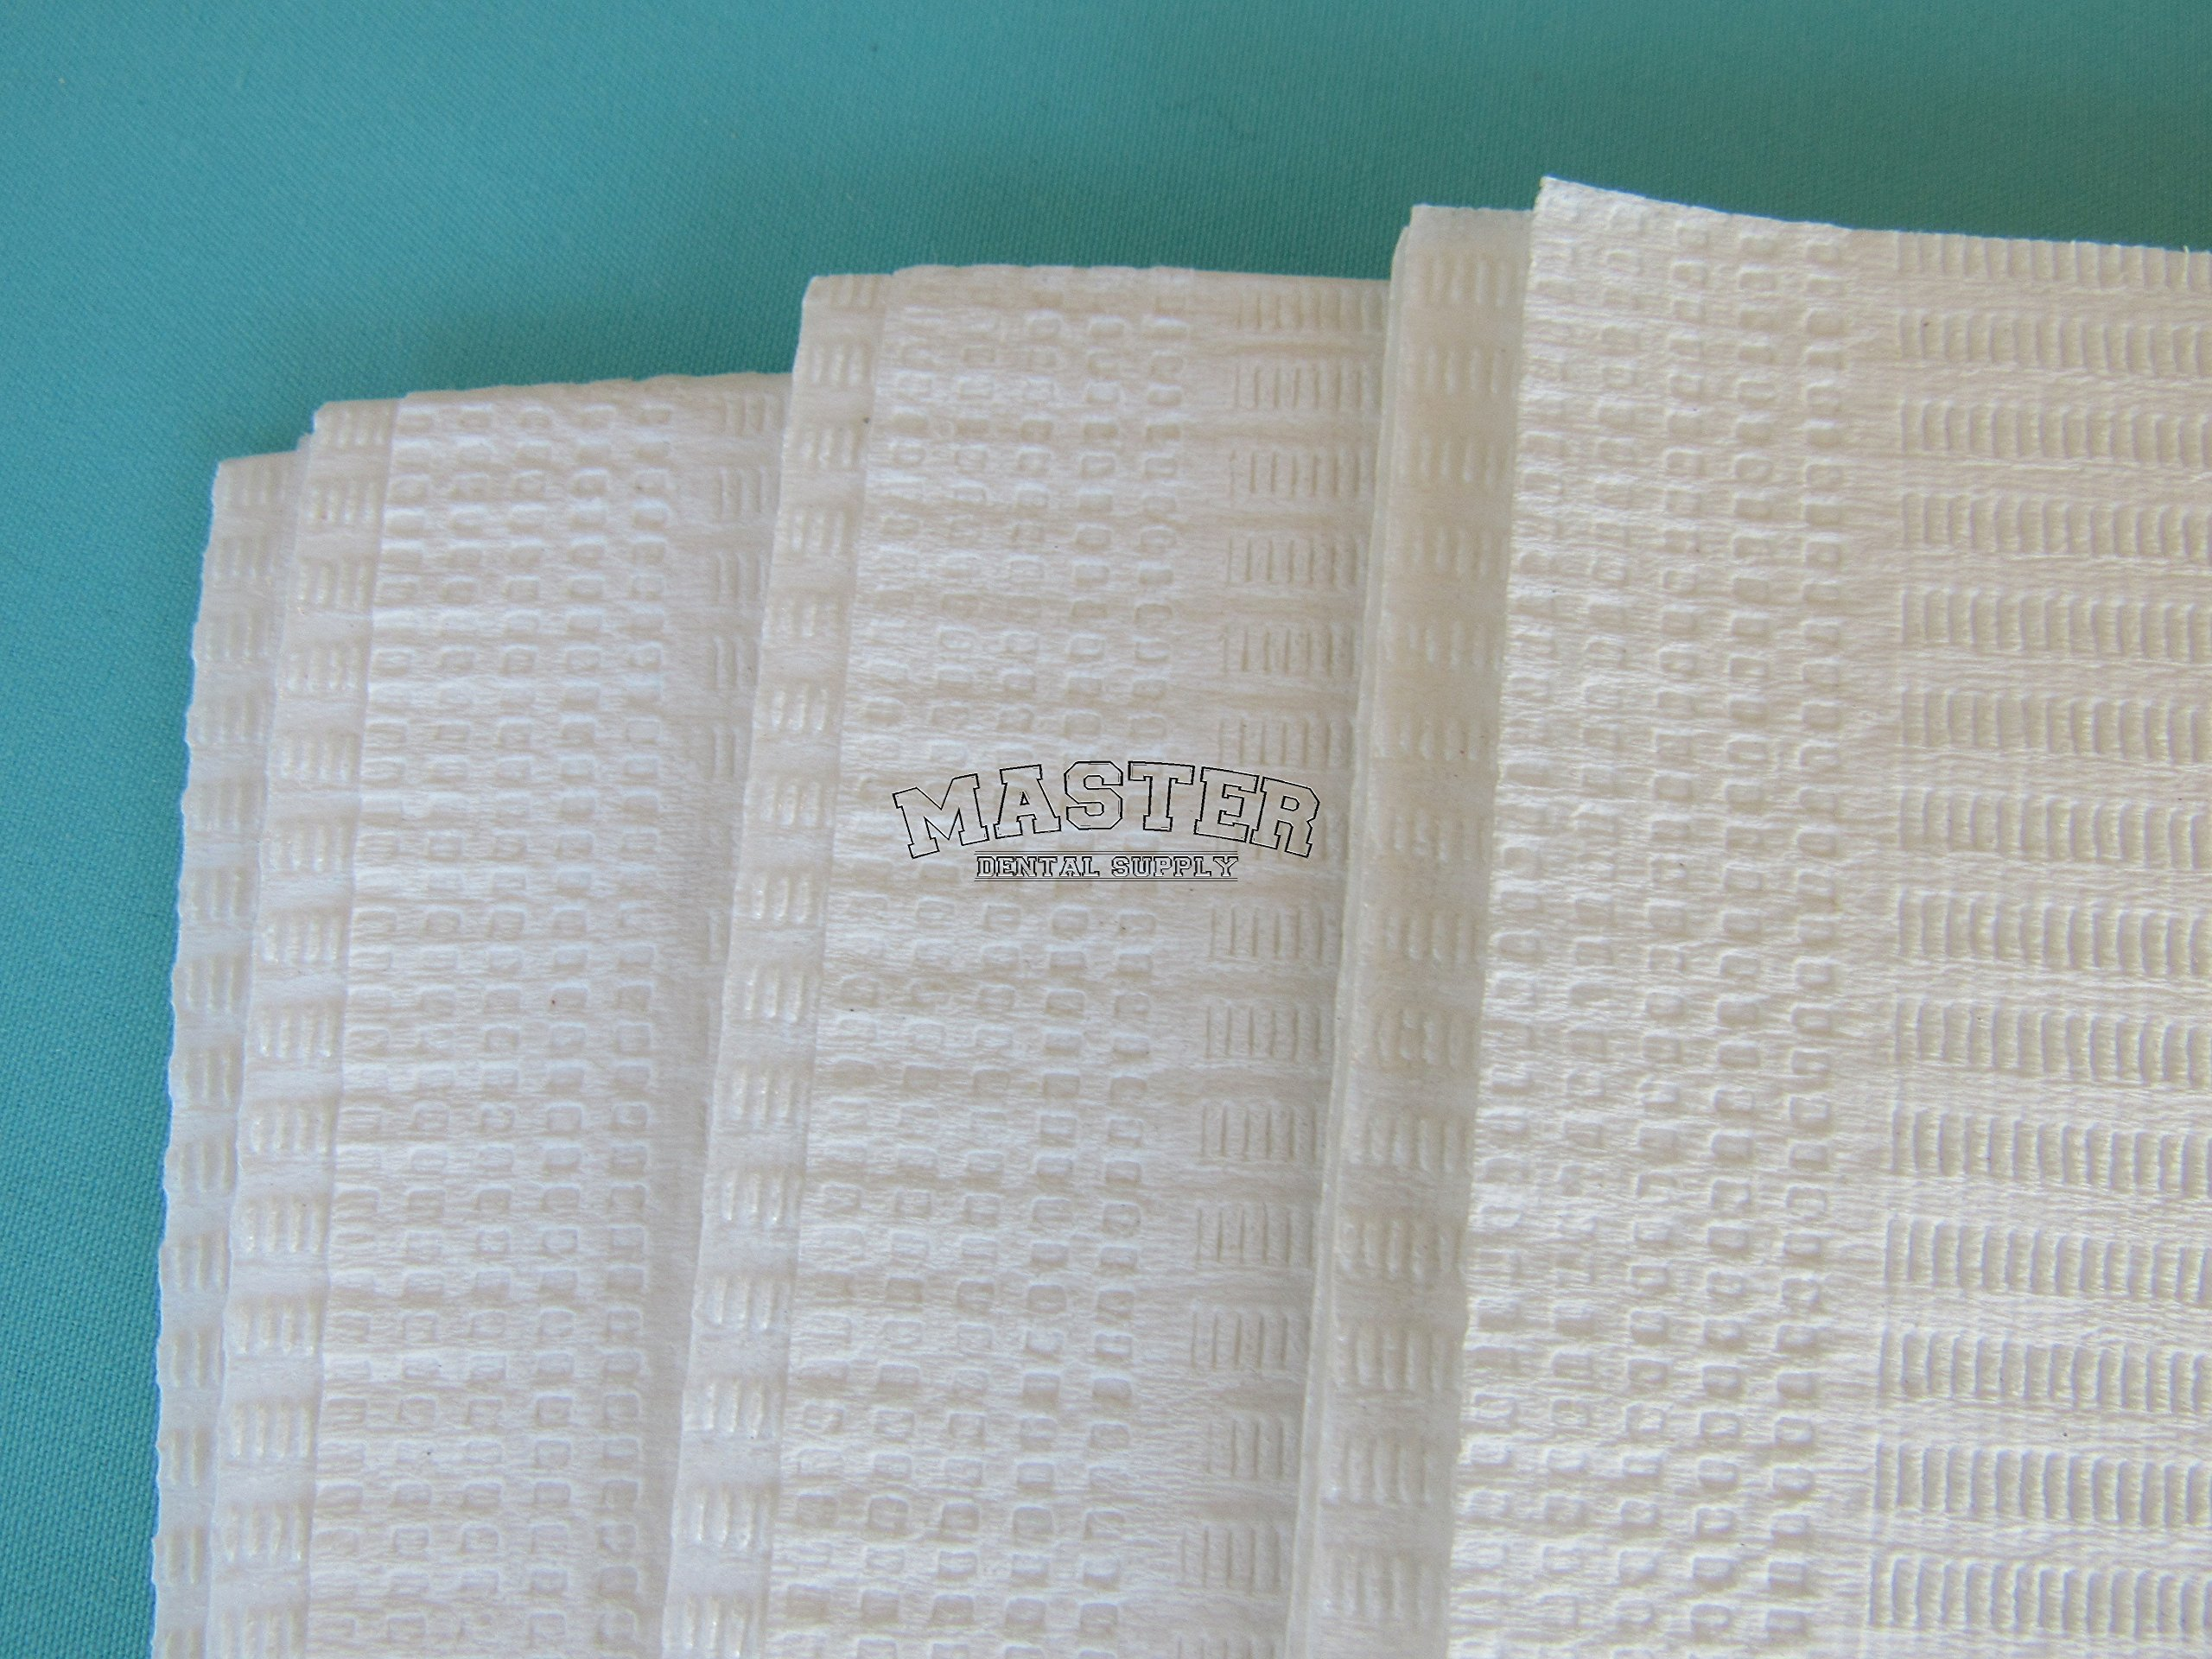 Disposable Patient Bibs Dental Tissue TattooTowels 100 Pcs WHITE Color 2 + 1 Ply Poly Waterproof 13'' X 18''